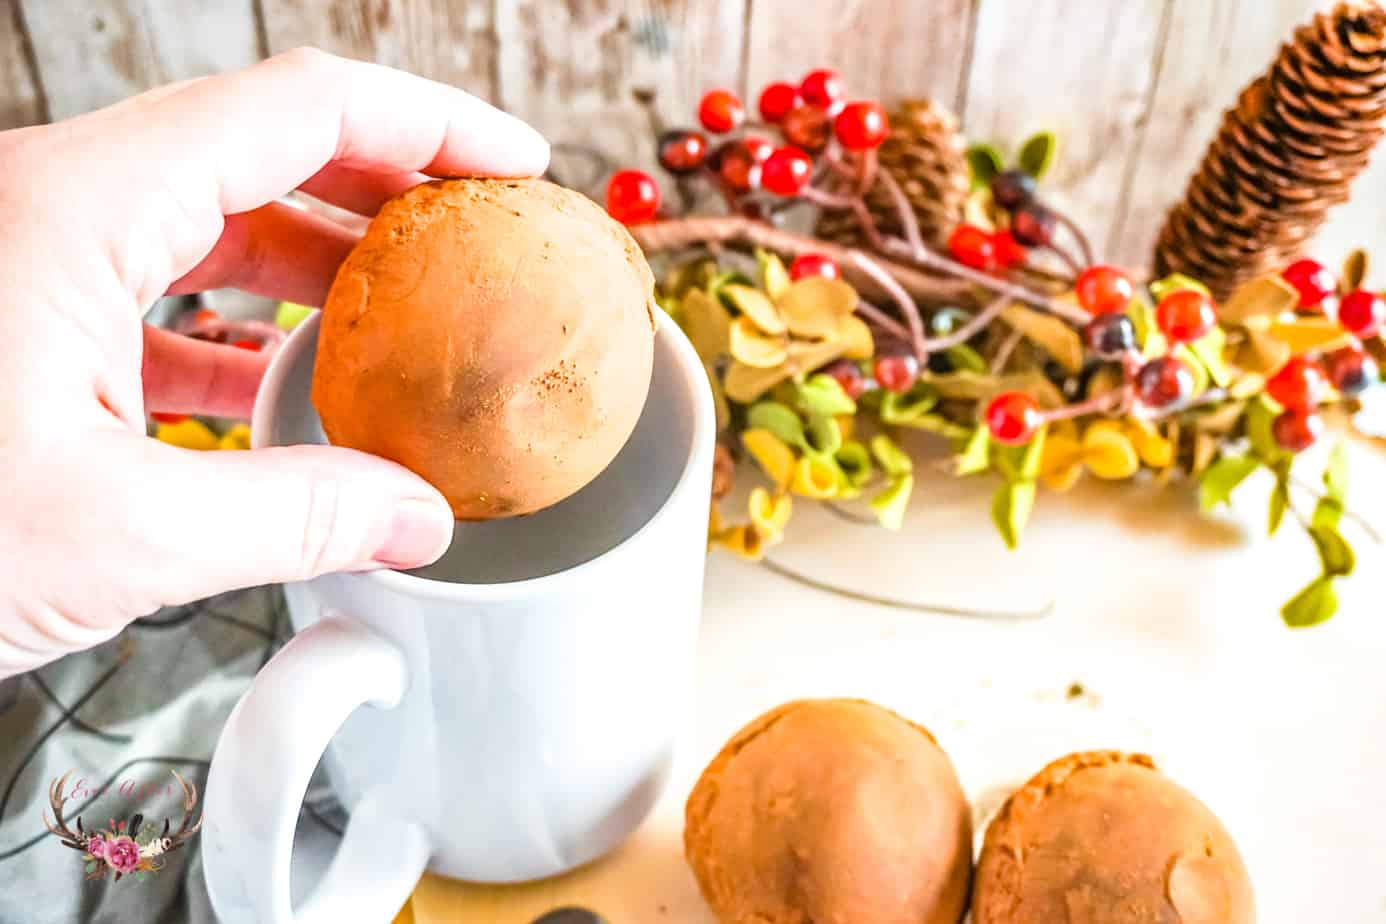 Joining in on the hot chocolate bomb craze with these Cinnamon Spice Hot Chocolate Bombs. These would make amazing holiday gifts to share with family and friends or perfect for cookie decorating,